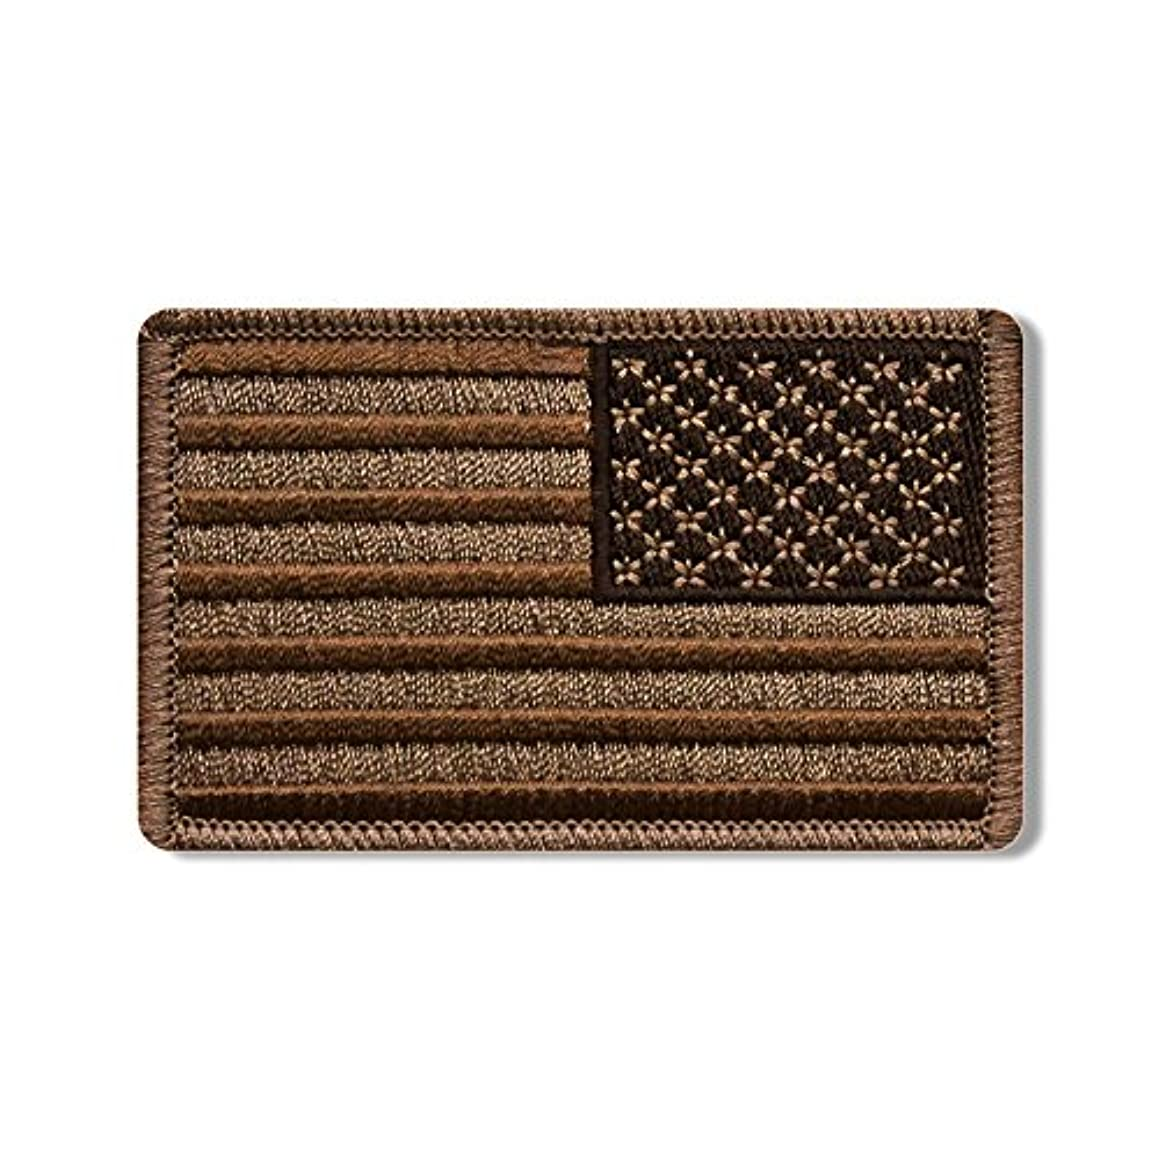 Hot Leathers, RIGHT ARM FLAG BROW, Iron-On / Saw-On High Thread Embroidered Rayon PATCH - 3